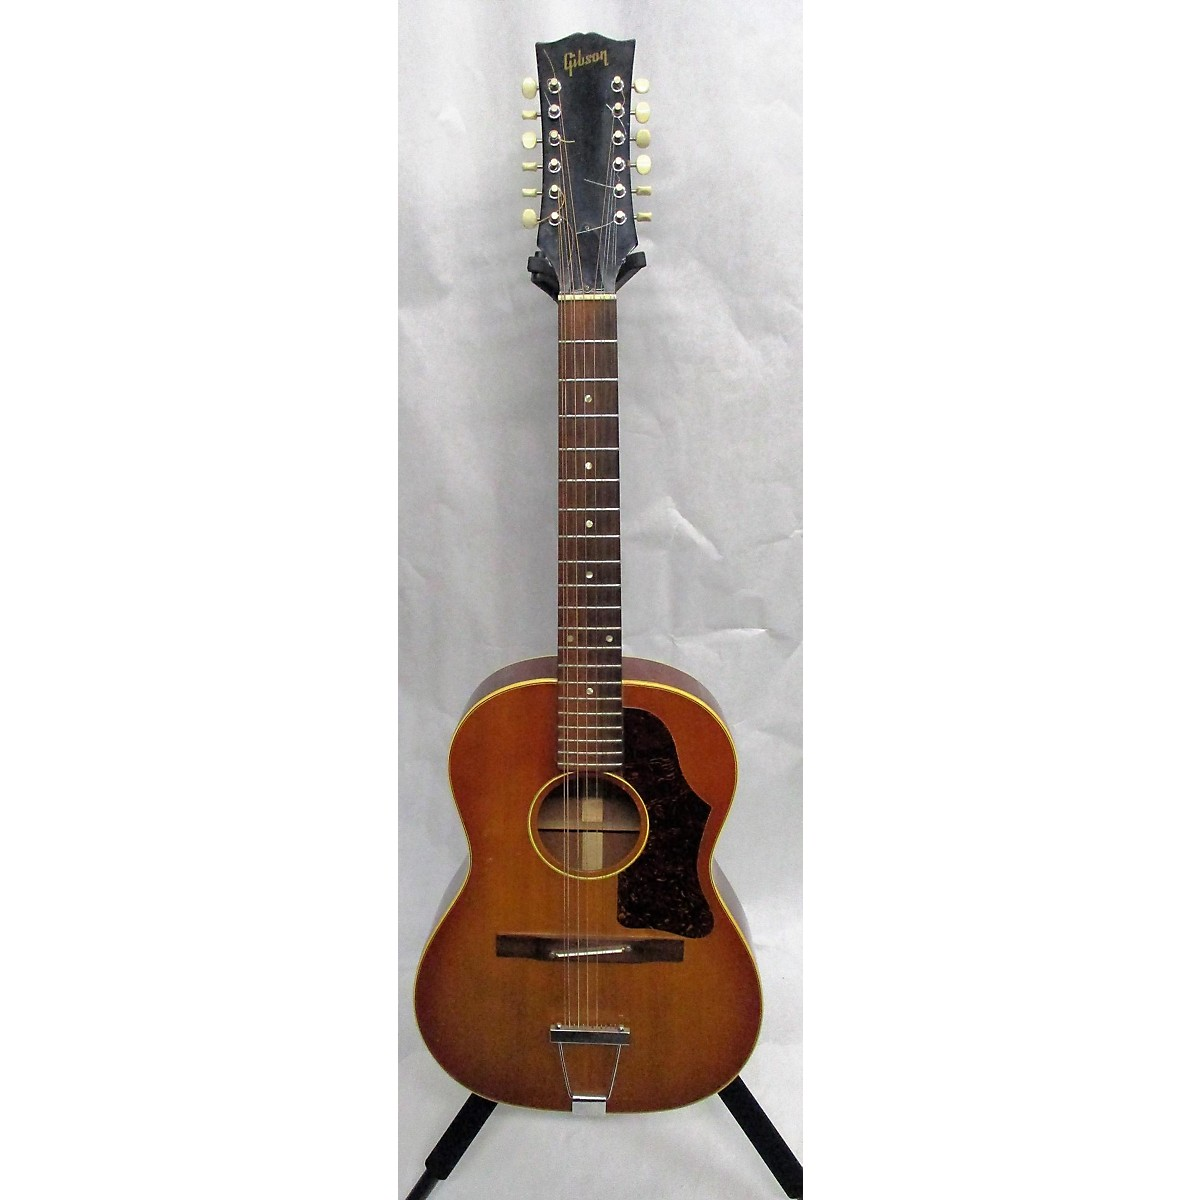 Gibson 1967 B25-12 12 String Acoustic Guitar